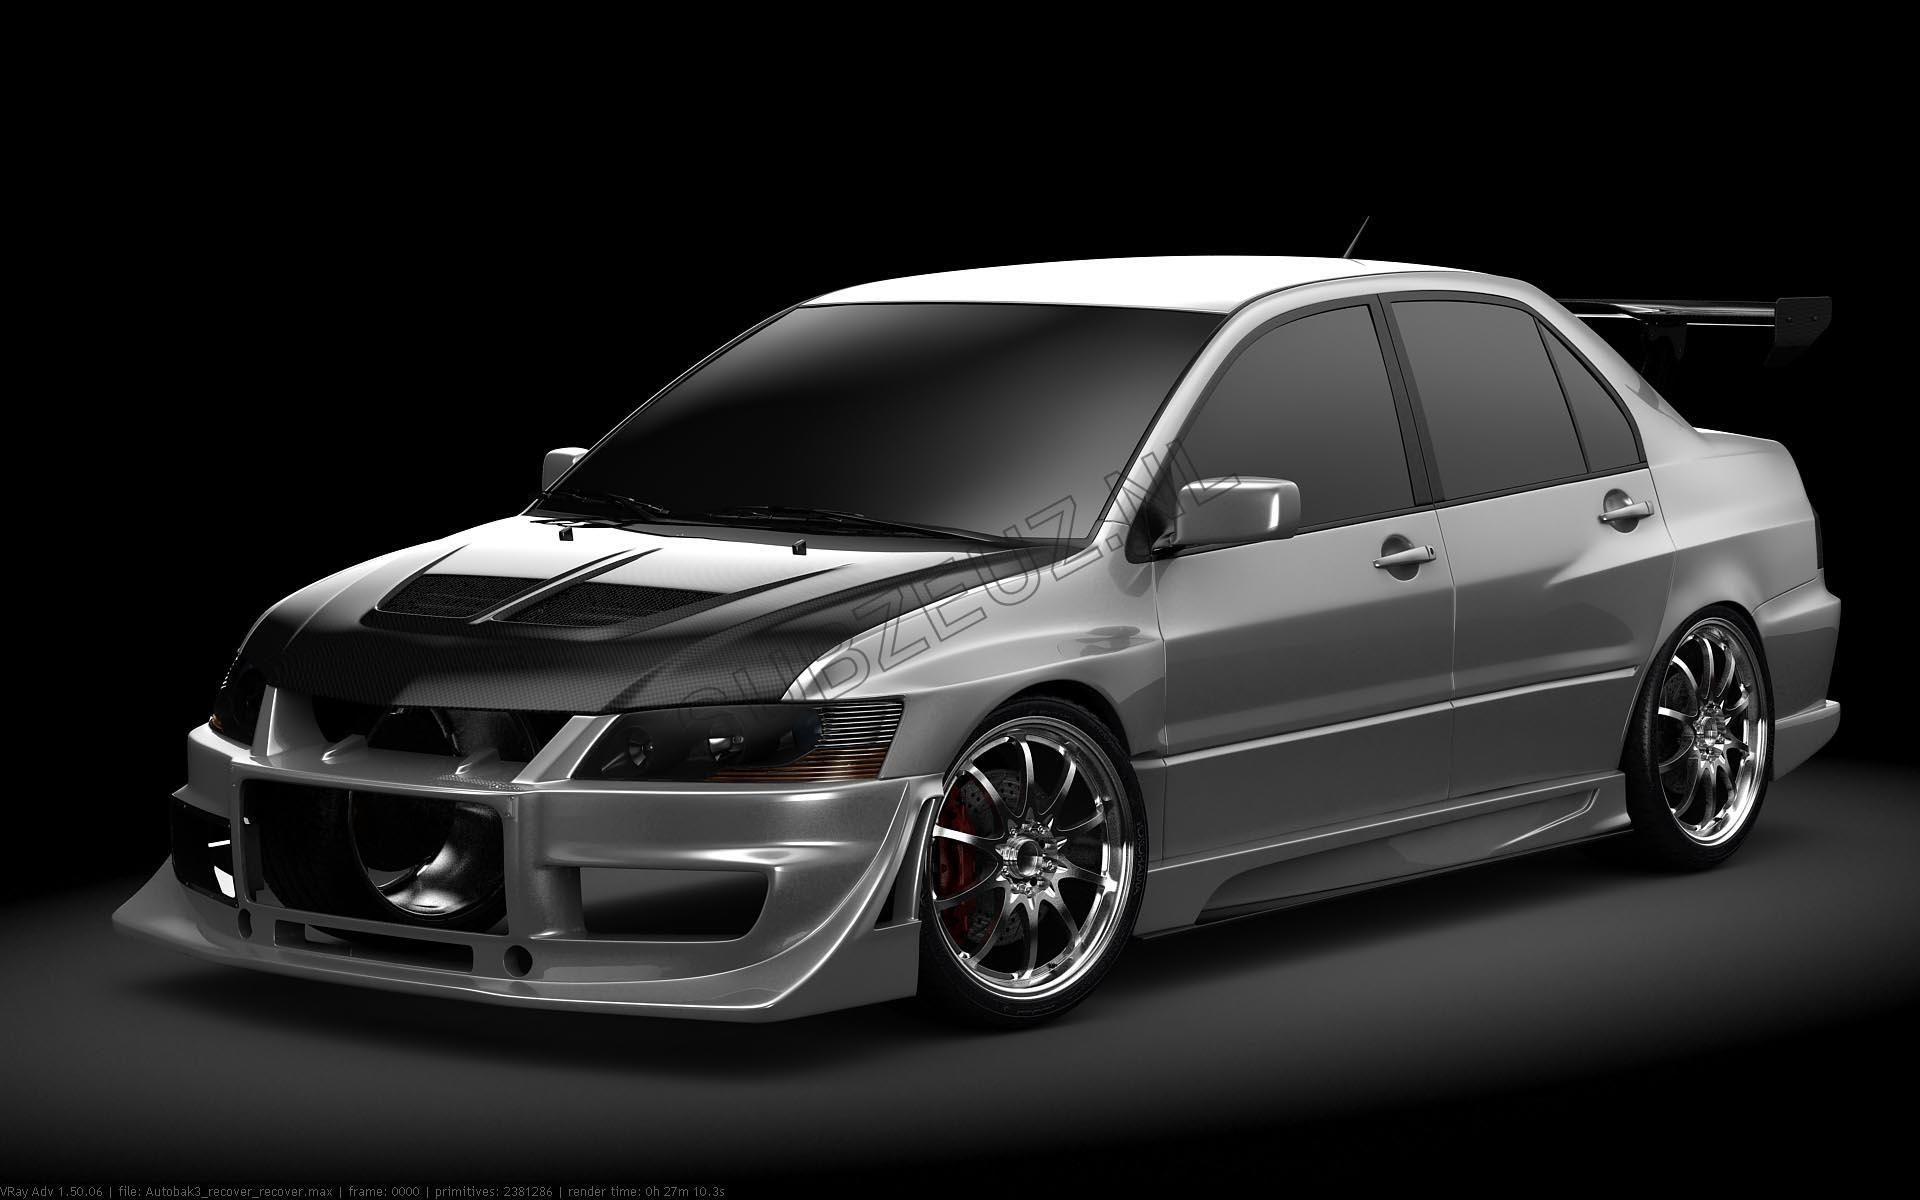 Mitsubishi Evo 8 Wallpapers - Wallpaper Cave